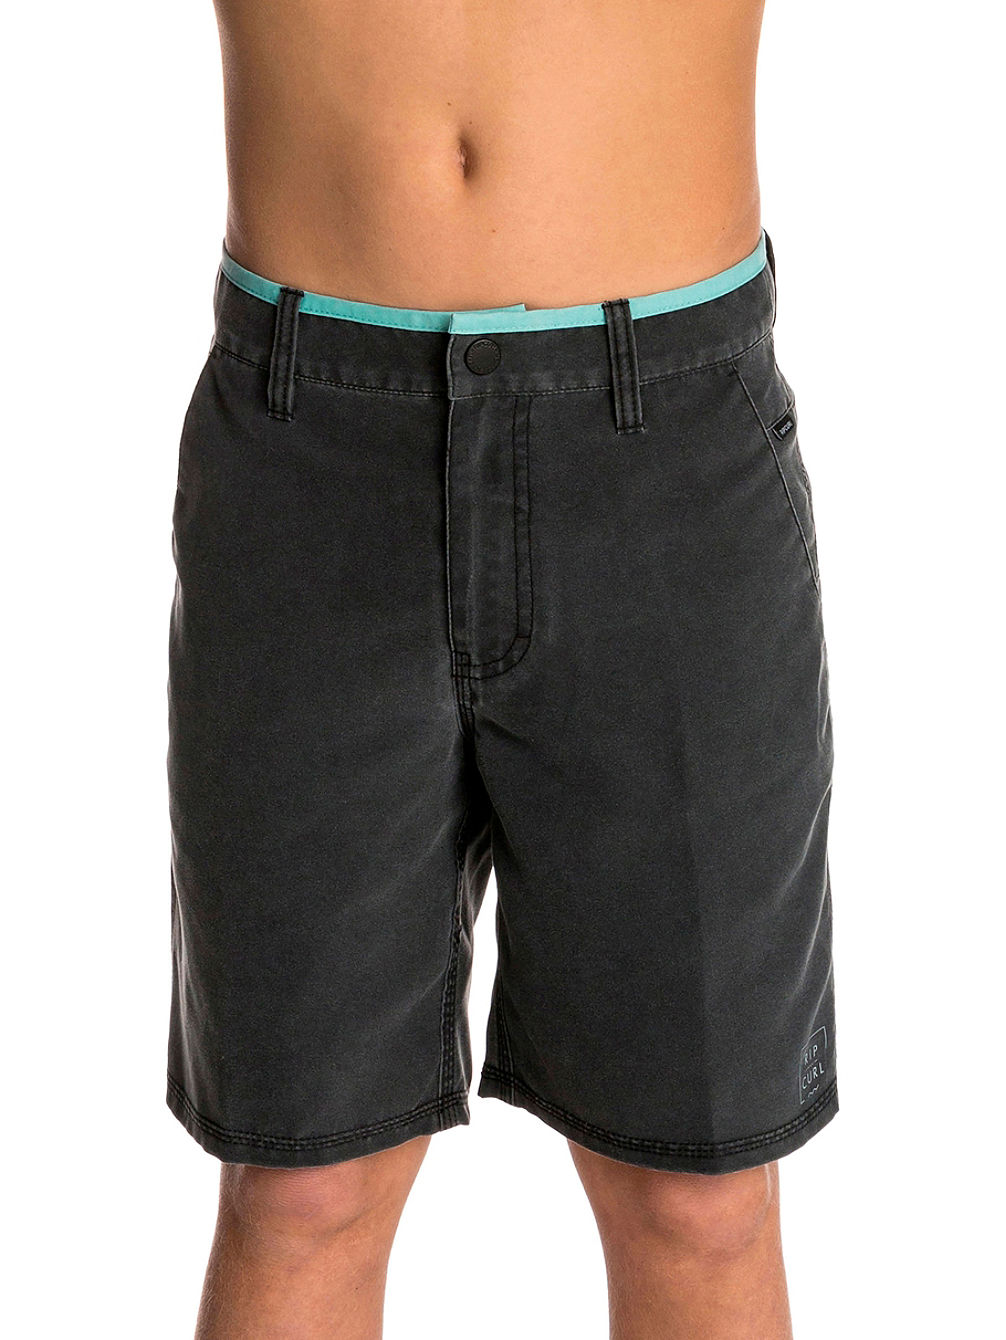 "Update Chino Boardwalk 17"" Shorts Jungen"